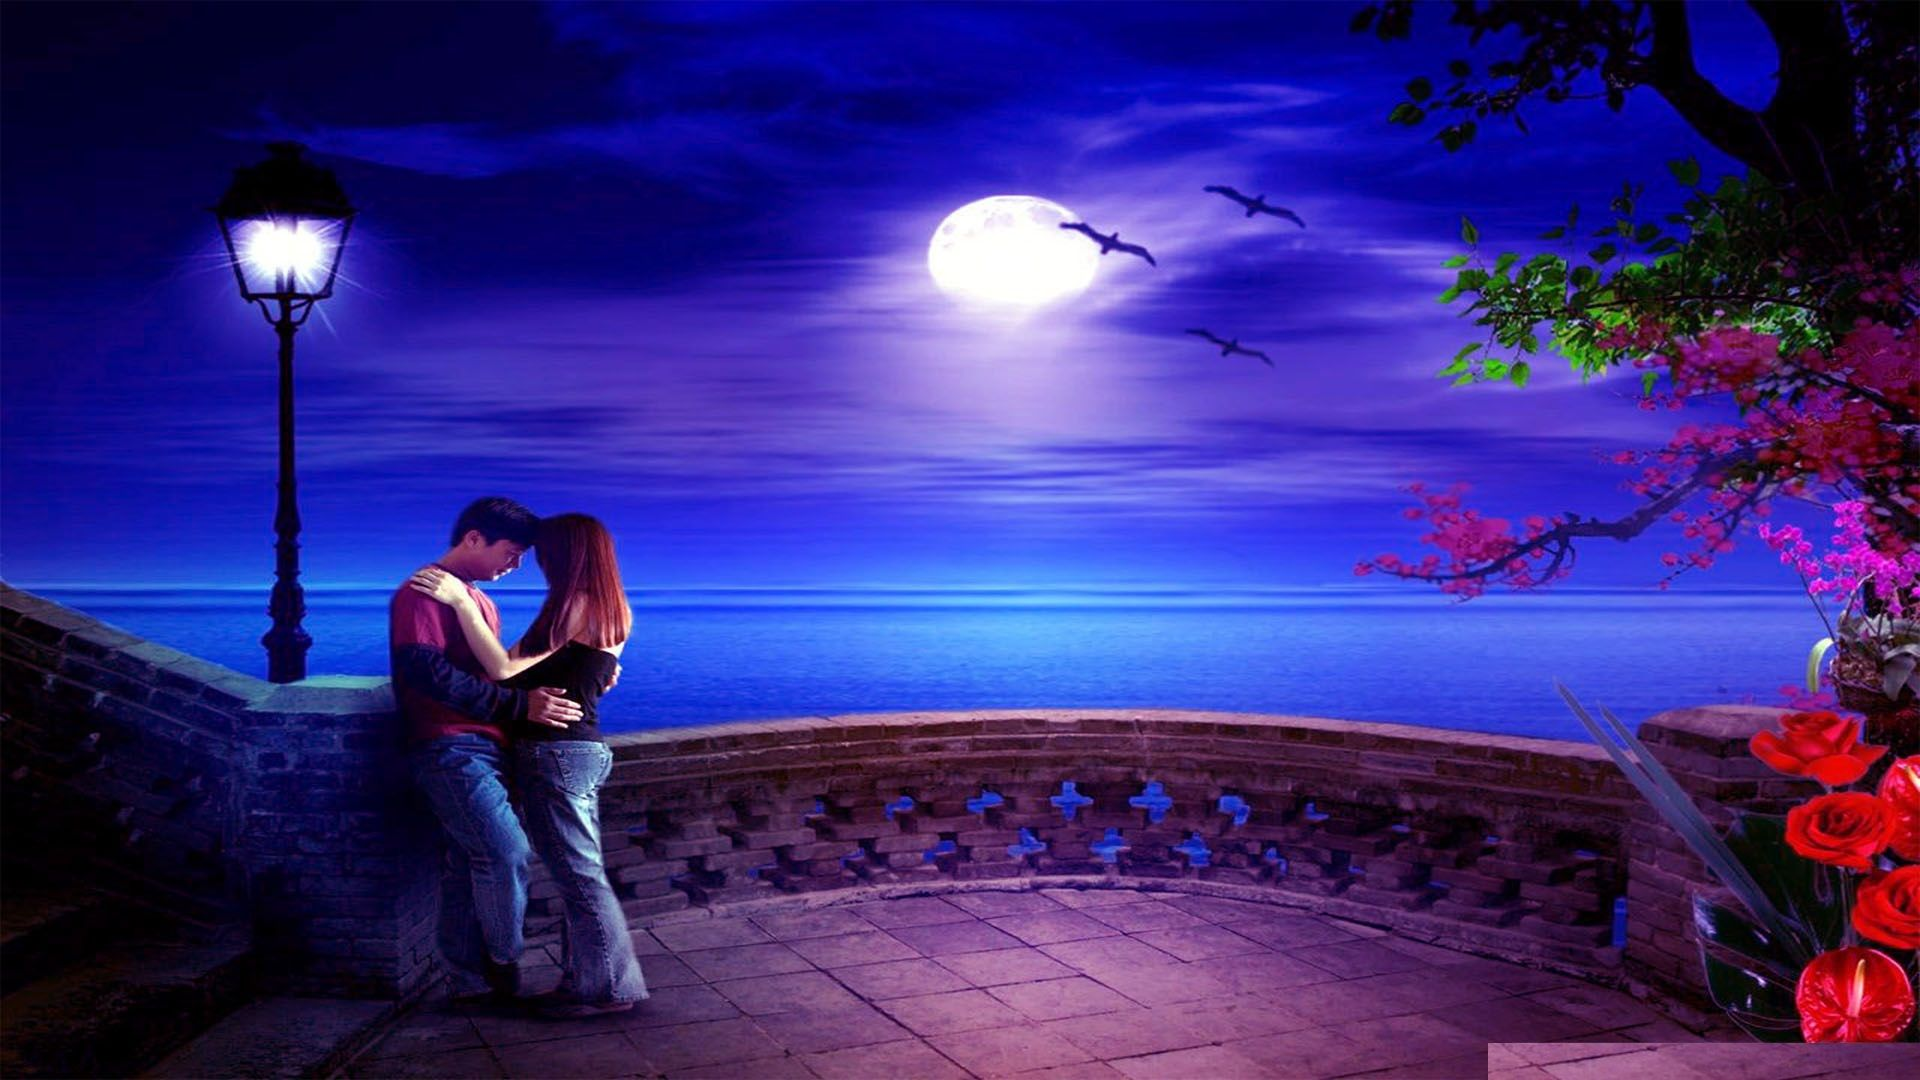 romantic love hd wallpapers find best latest romantic